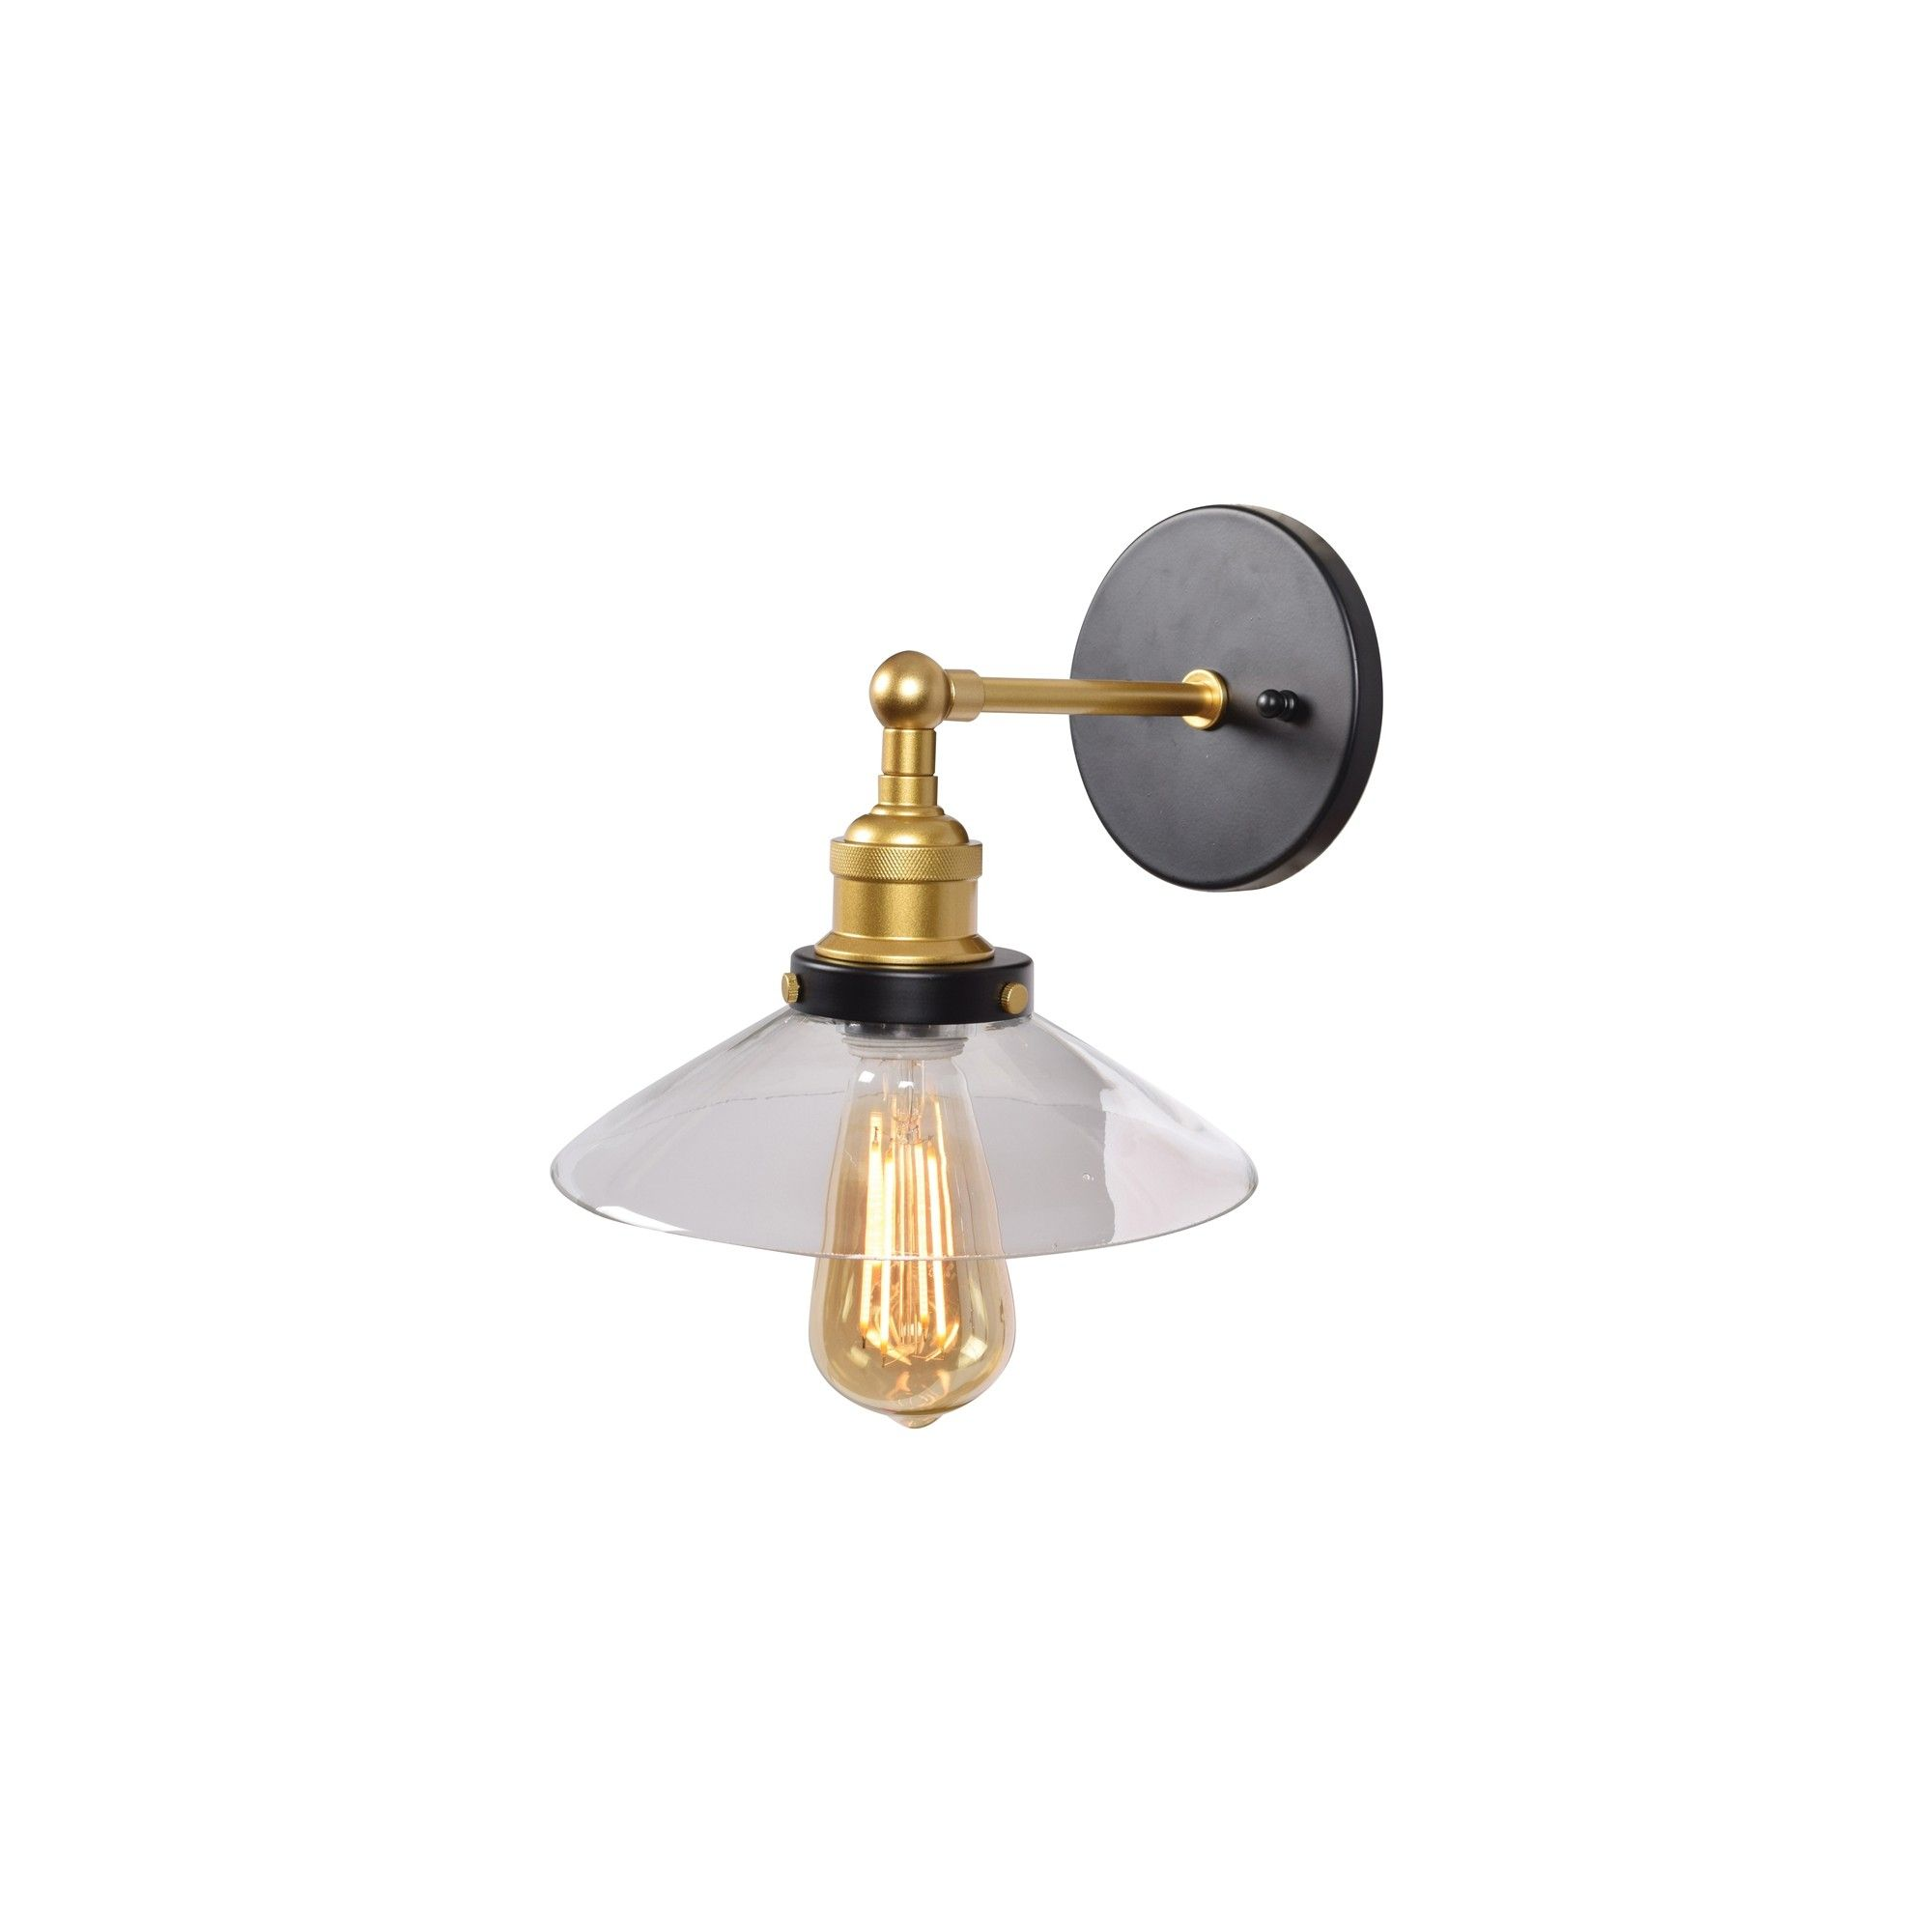 Mid Century Retro Wall Sconce Sconce Lighting Wall Sconce